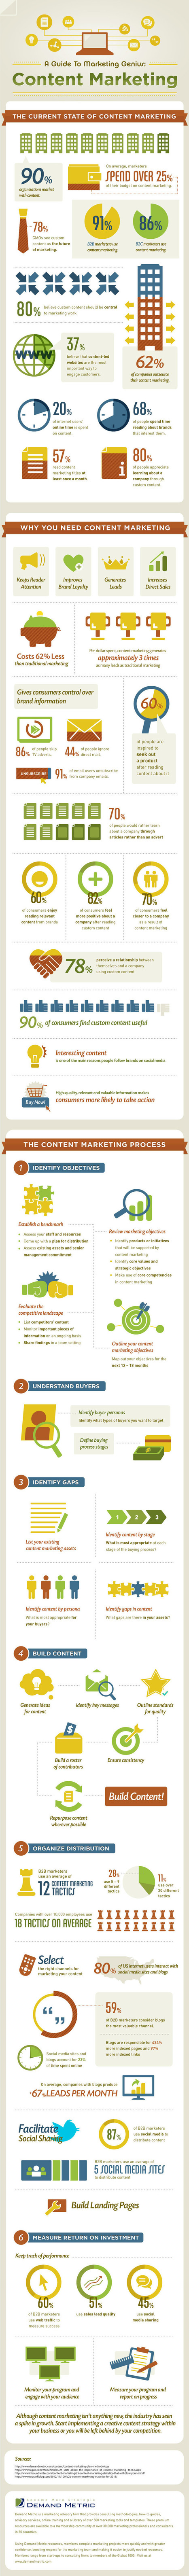 Infographics: Guide to Content Marketing - Dendrite Park | Social Media & Communications | Scoop.it